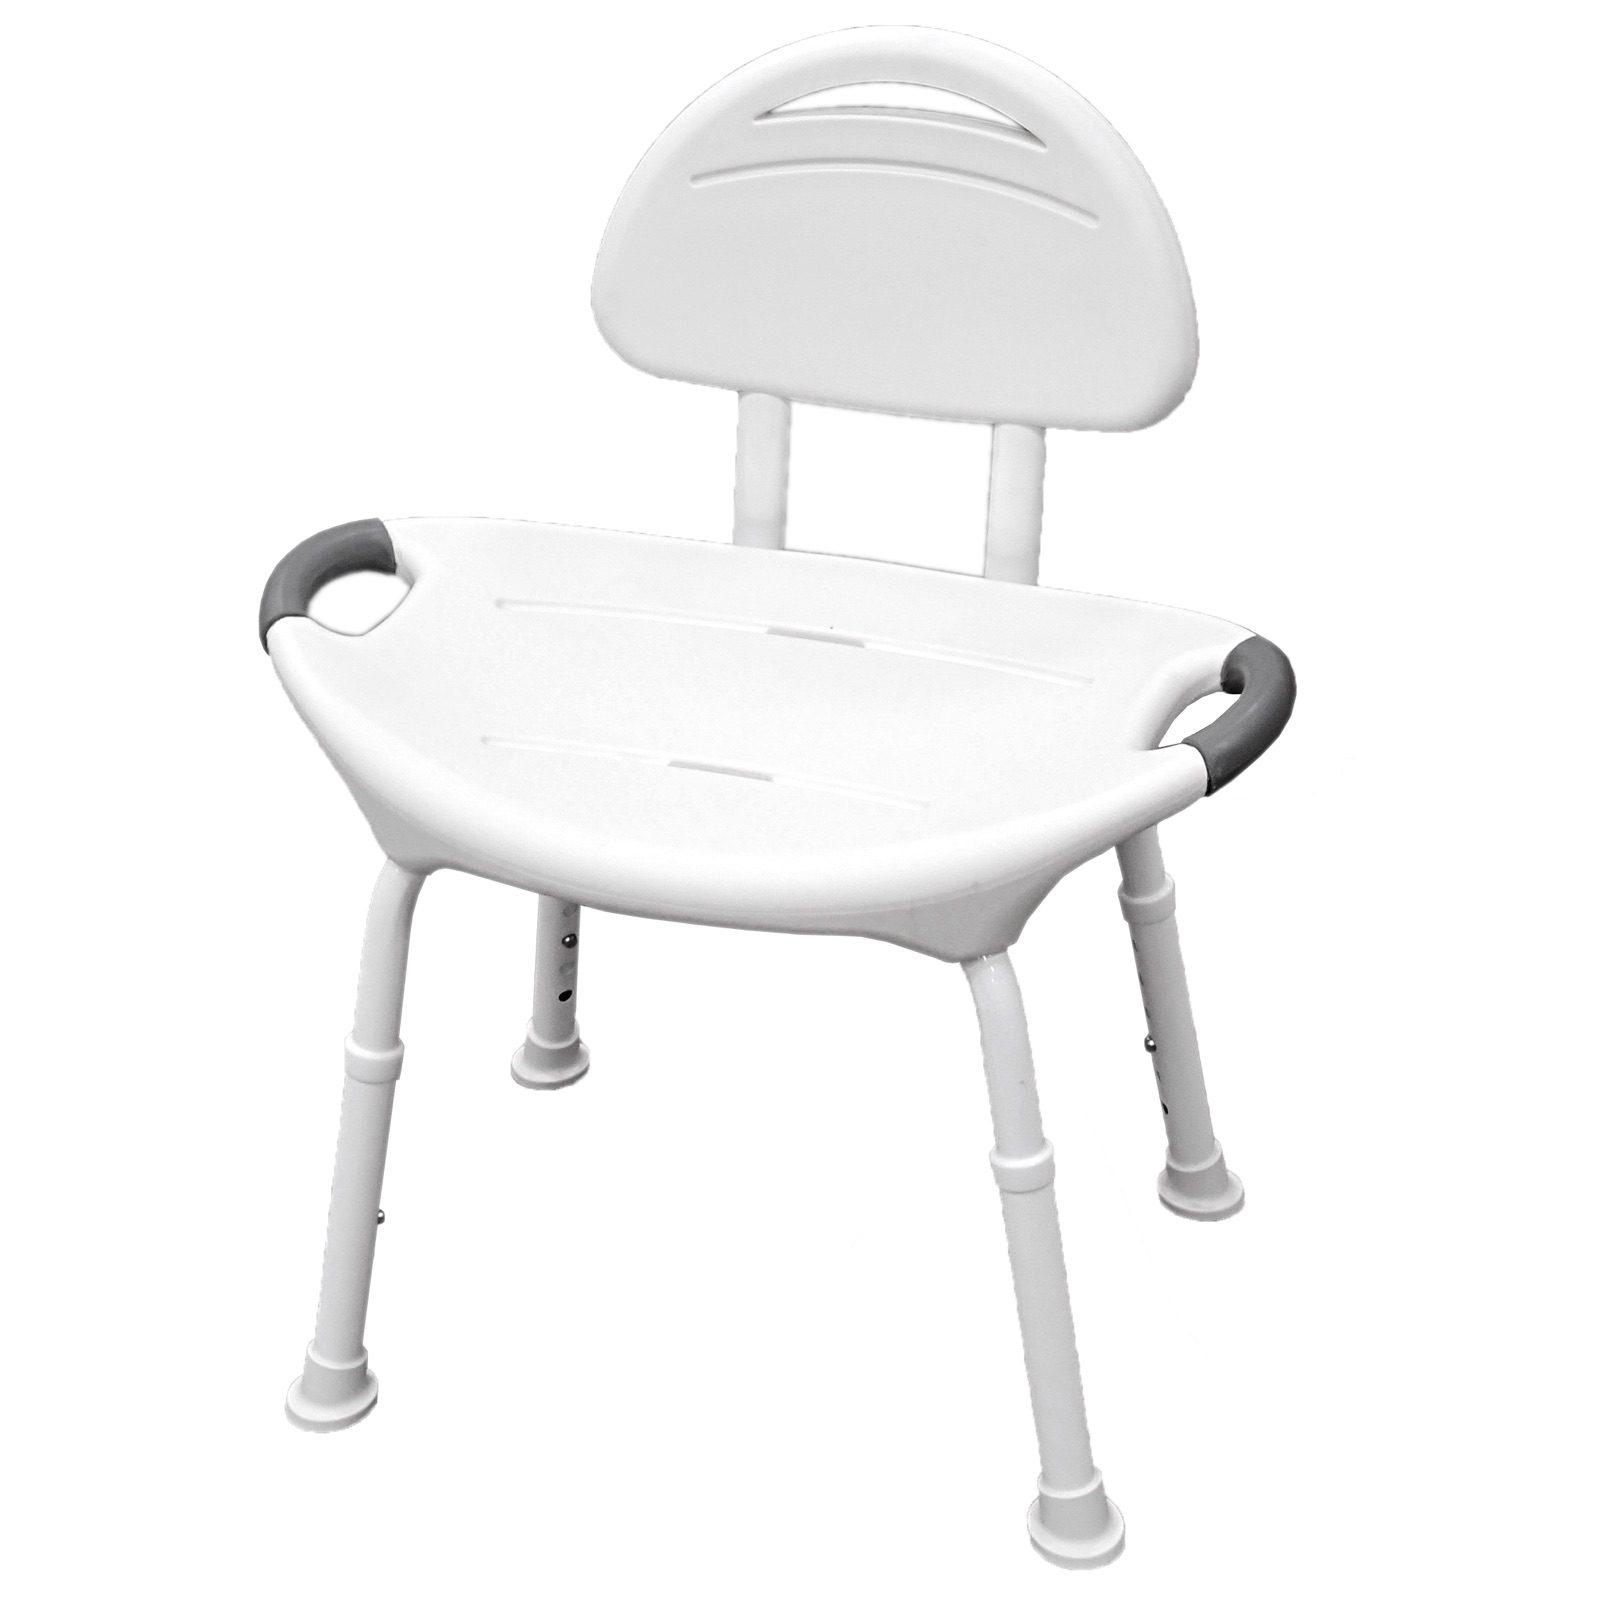 Shower Chair - Dura with backrest